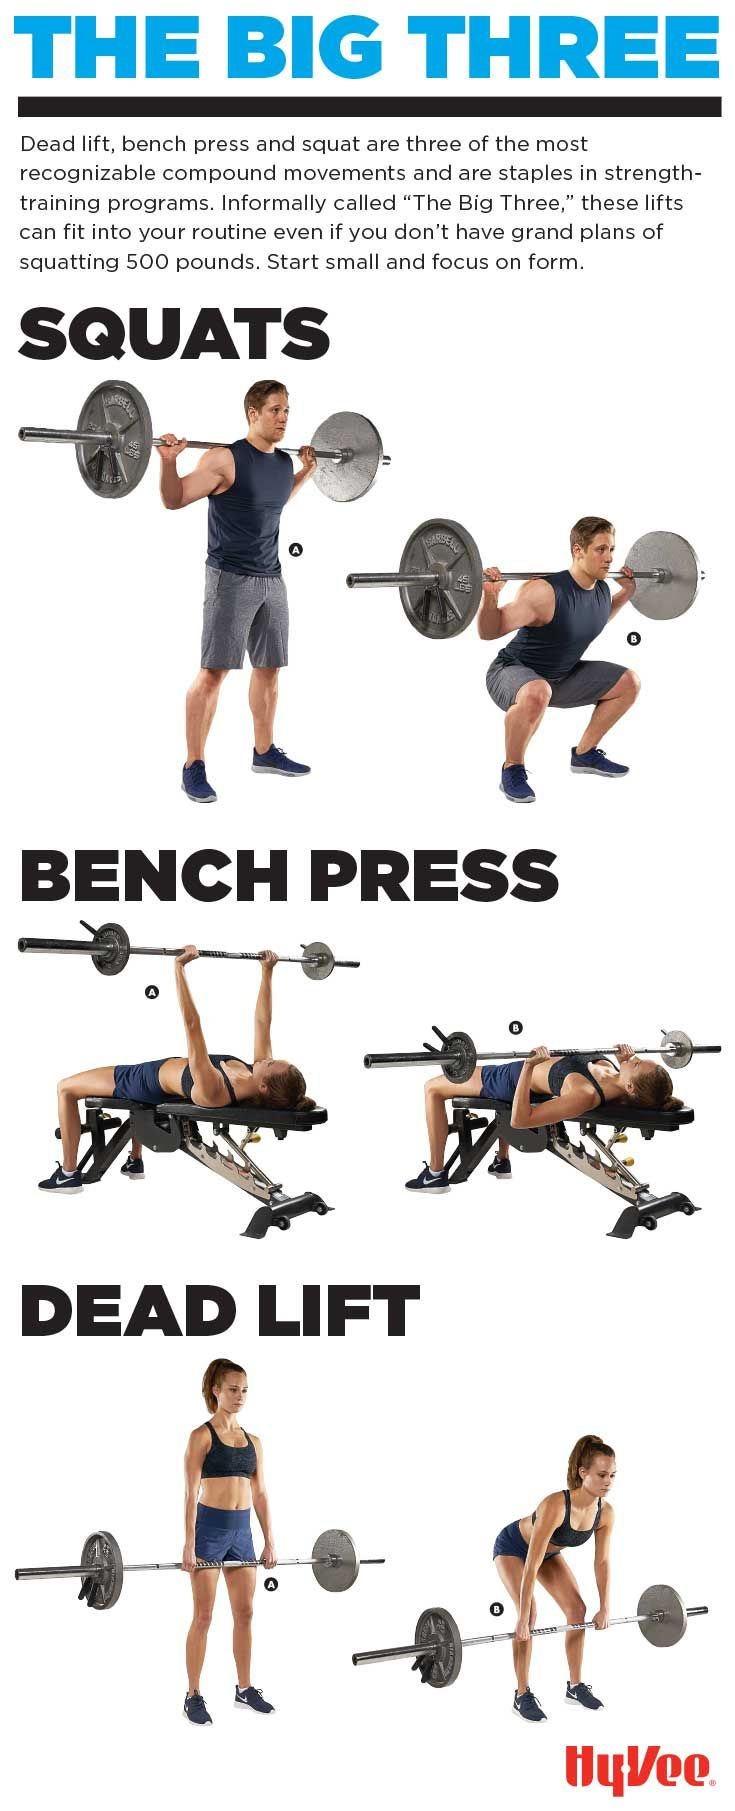 Squat Press Lift Dead Lift Bench Press And Squats Are The Three Staples Of Strength Training Start Small An Deadlift Bench Press Strength Training Program